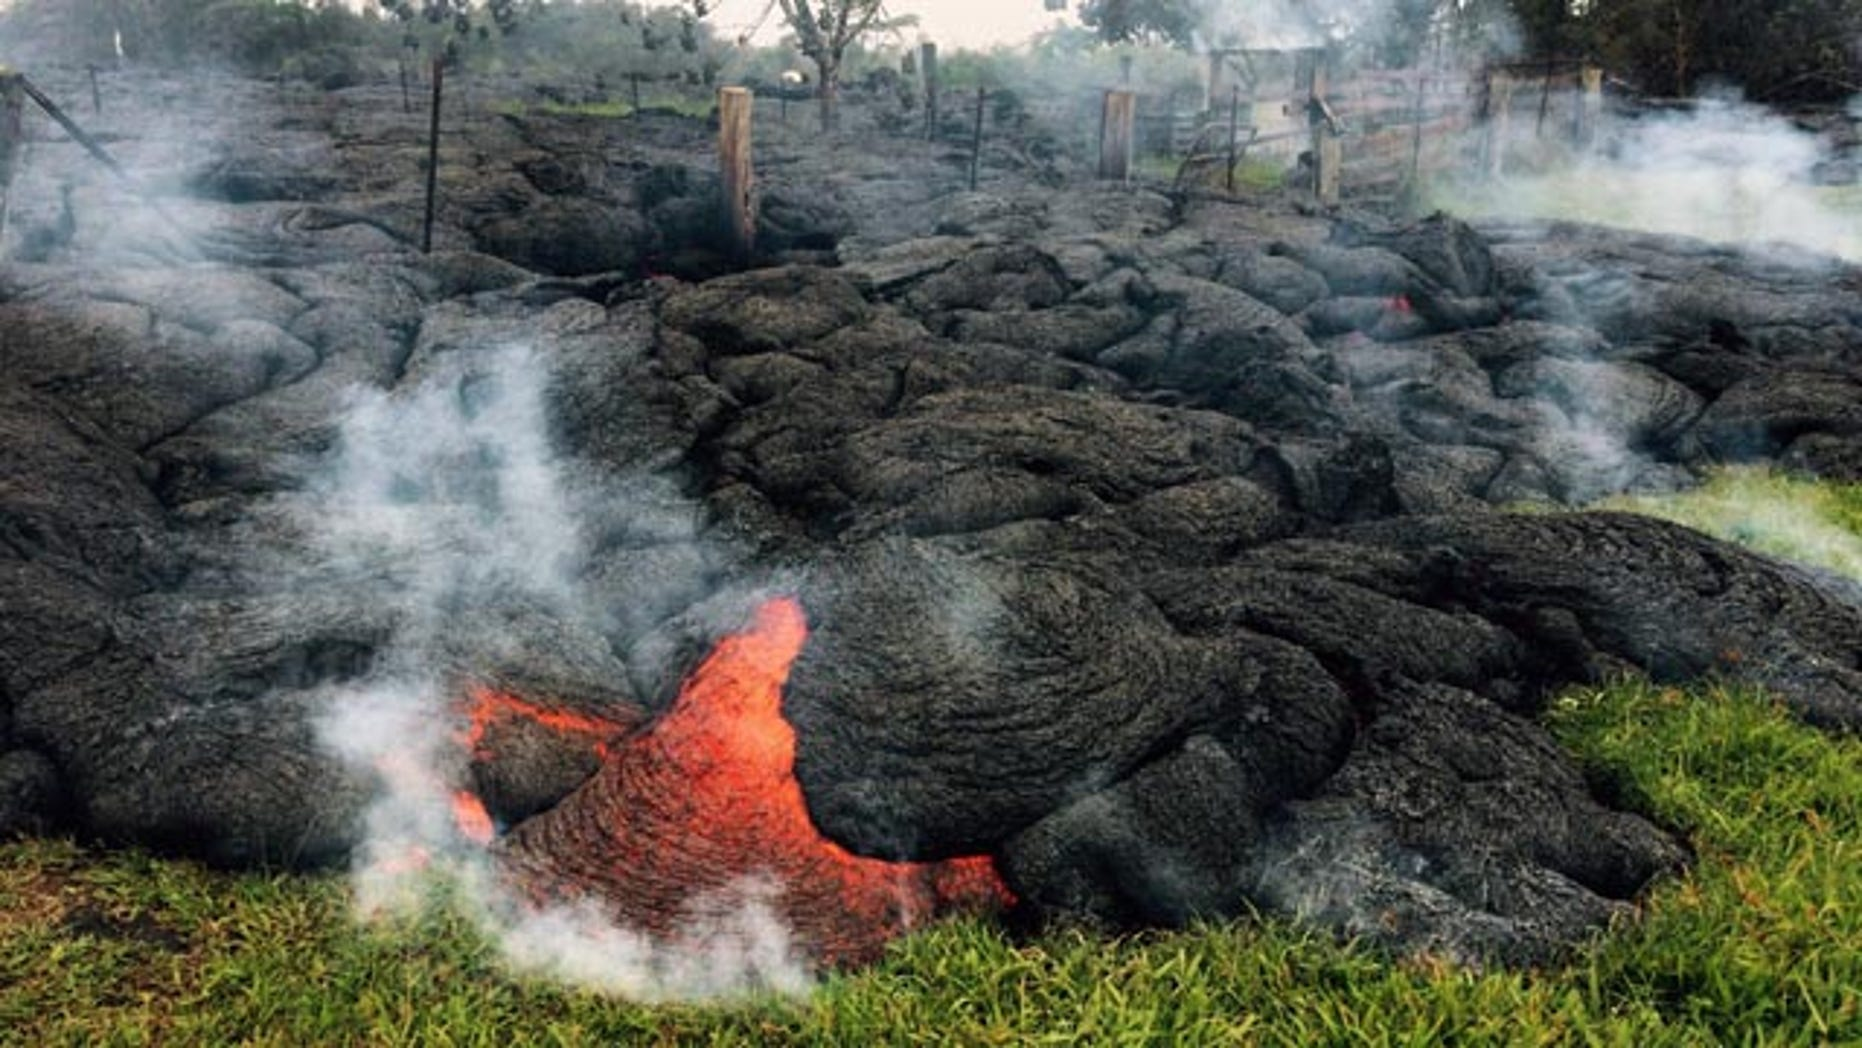 October 26, 2014: This photo provided by the U.S. Geological Survey shows the lava flow from an eruption that began on June 27, as the front remains active and continues to advance towards the northeast, threatening the town of Pahoa on the Big Island of Hawaii. (AP Photo/U.S. Geological Survey)